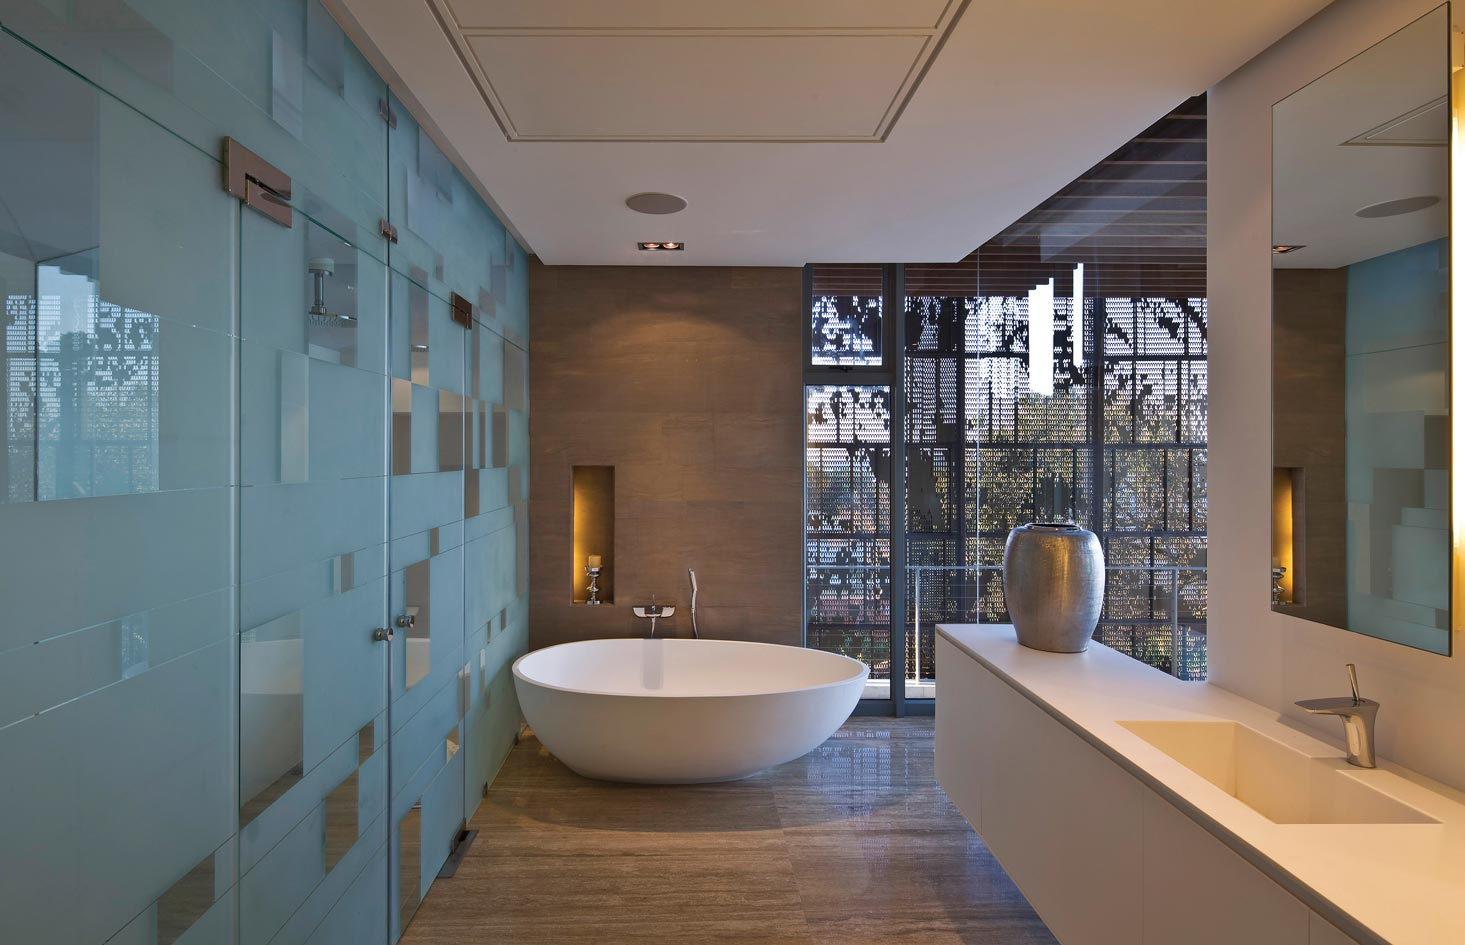 Bathroom Designs Durban bathroom ideas pictures south africa beautiful bathroom ideas in